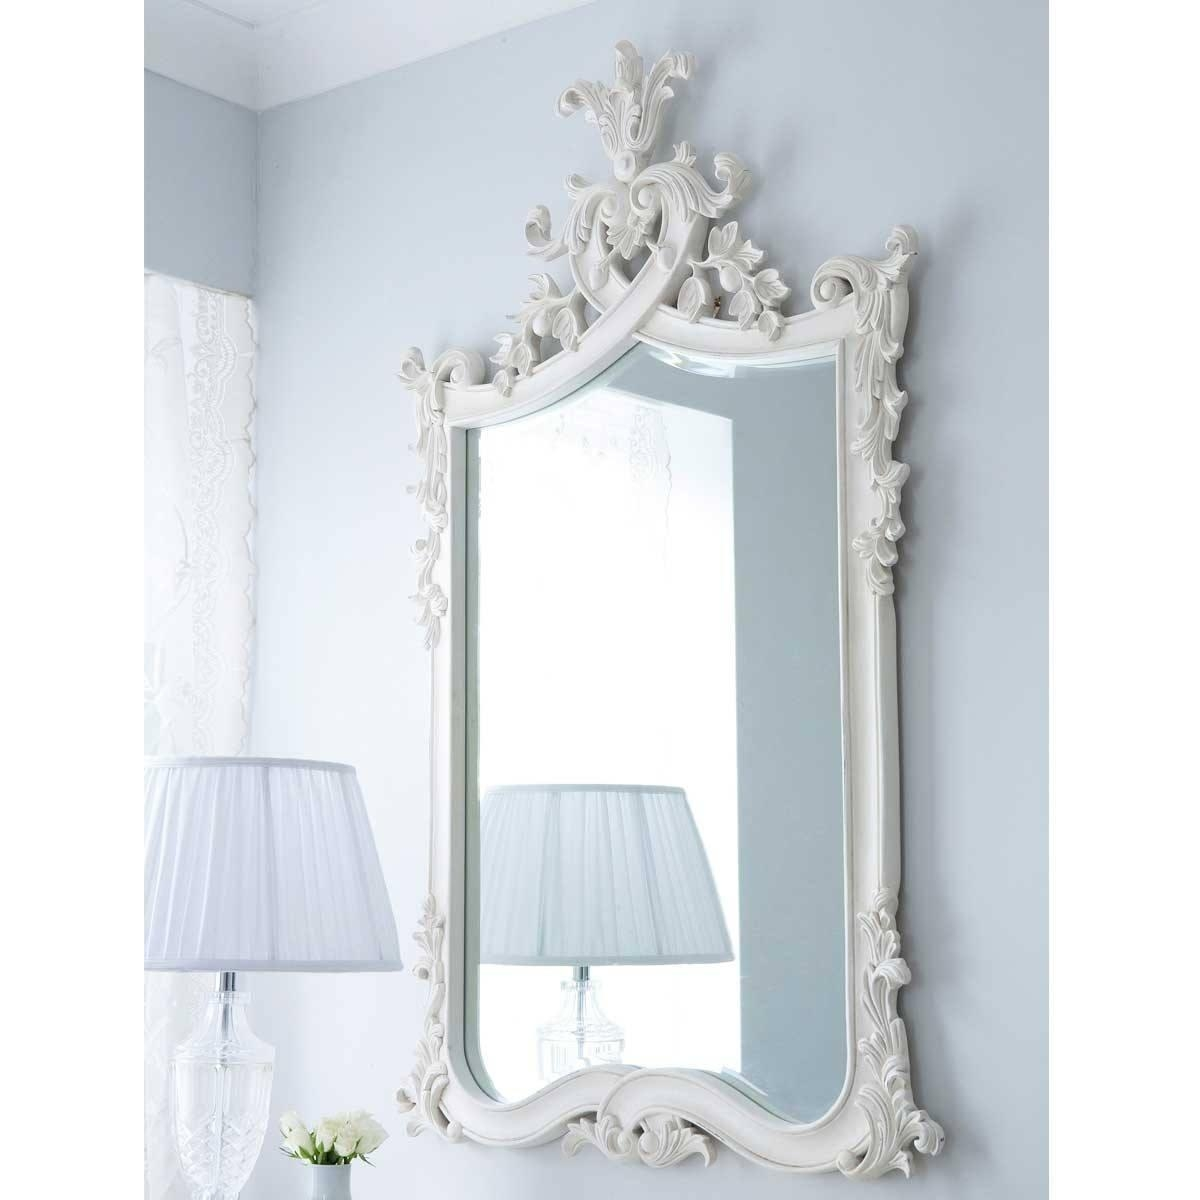 Provencal Heart Top White Mirror | Luxury Mirror In White French Mirrors (Image 16 of 20)